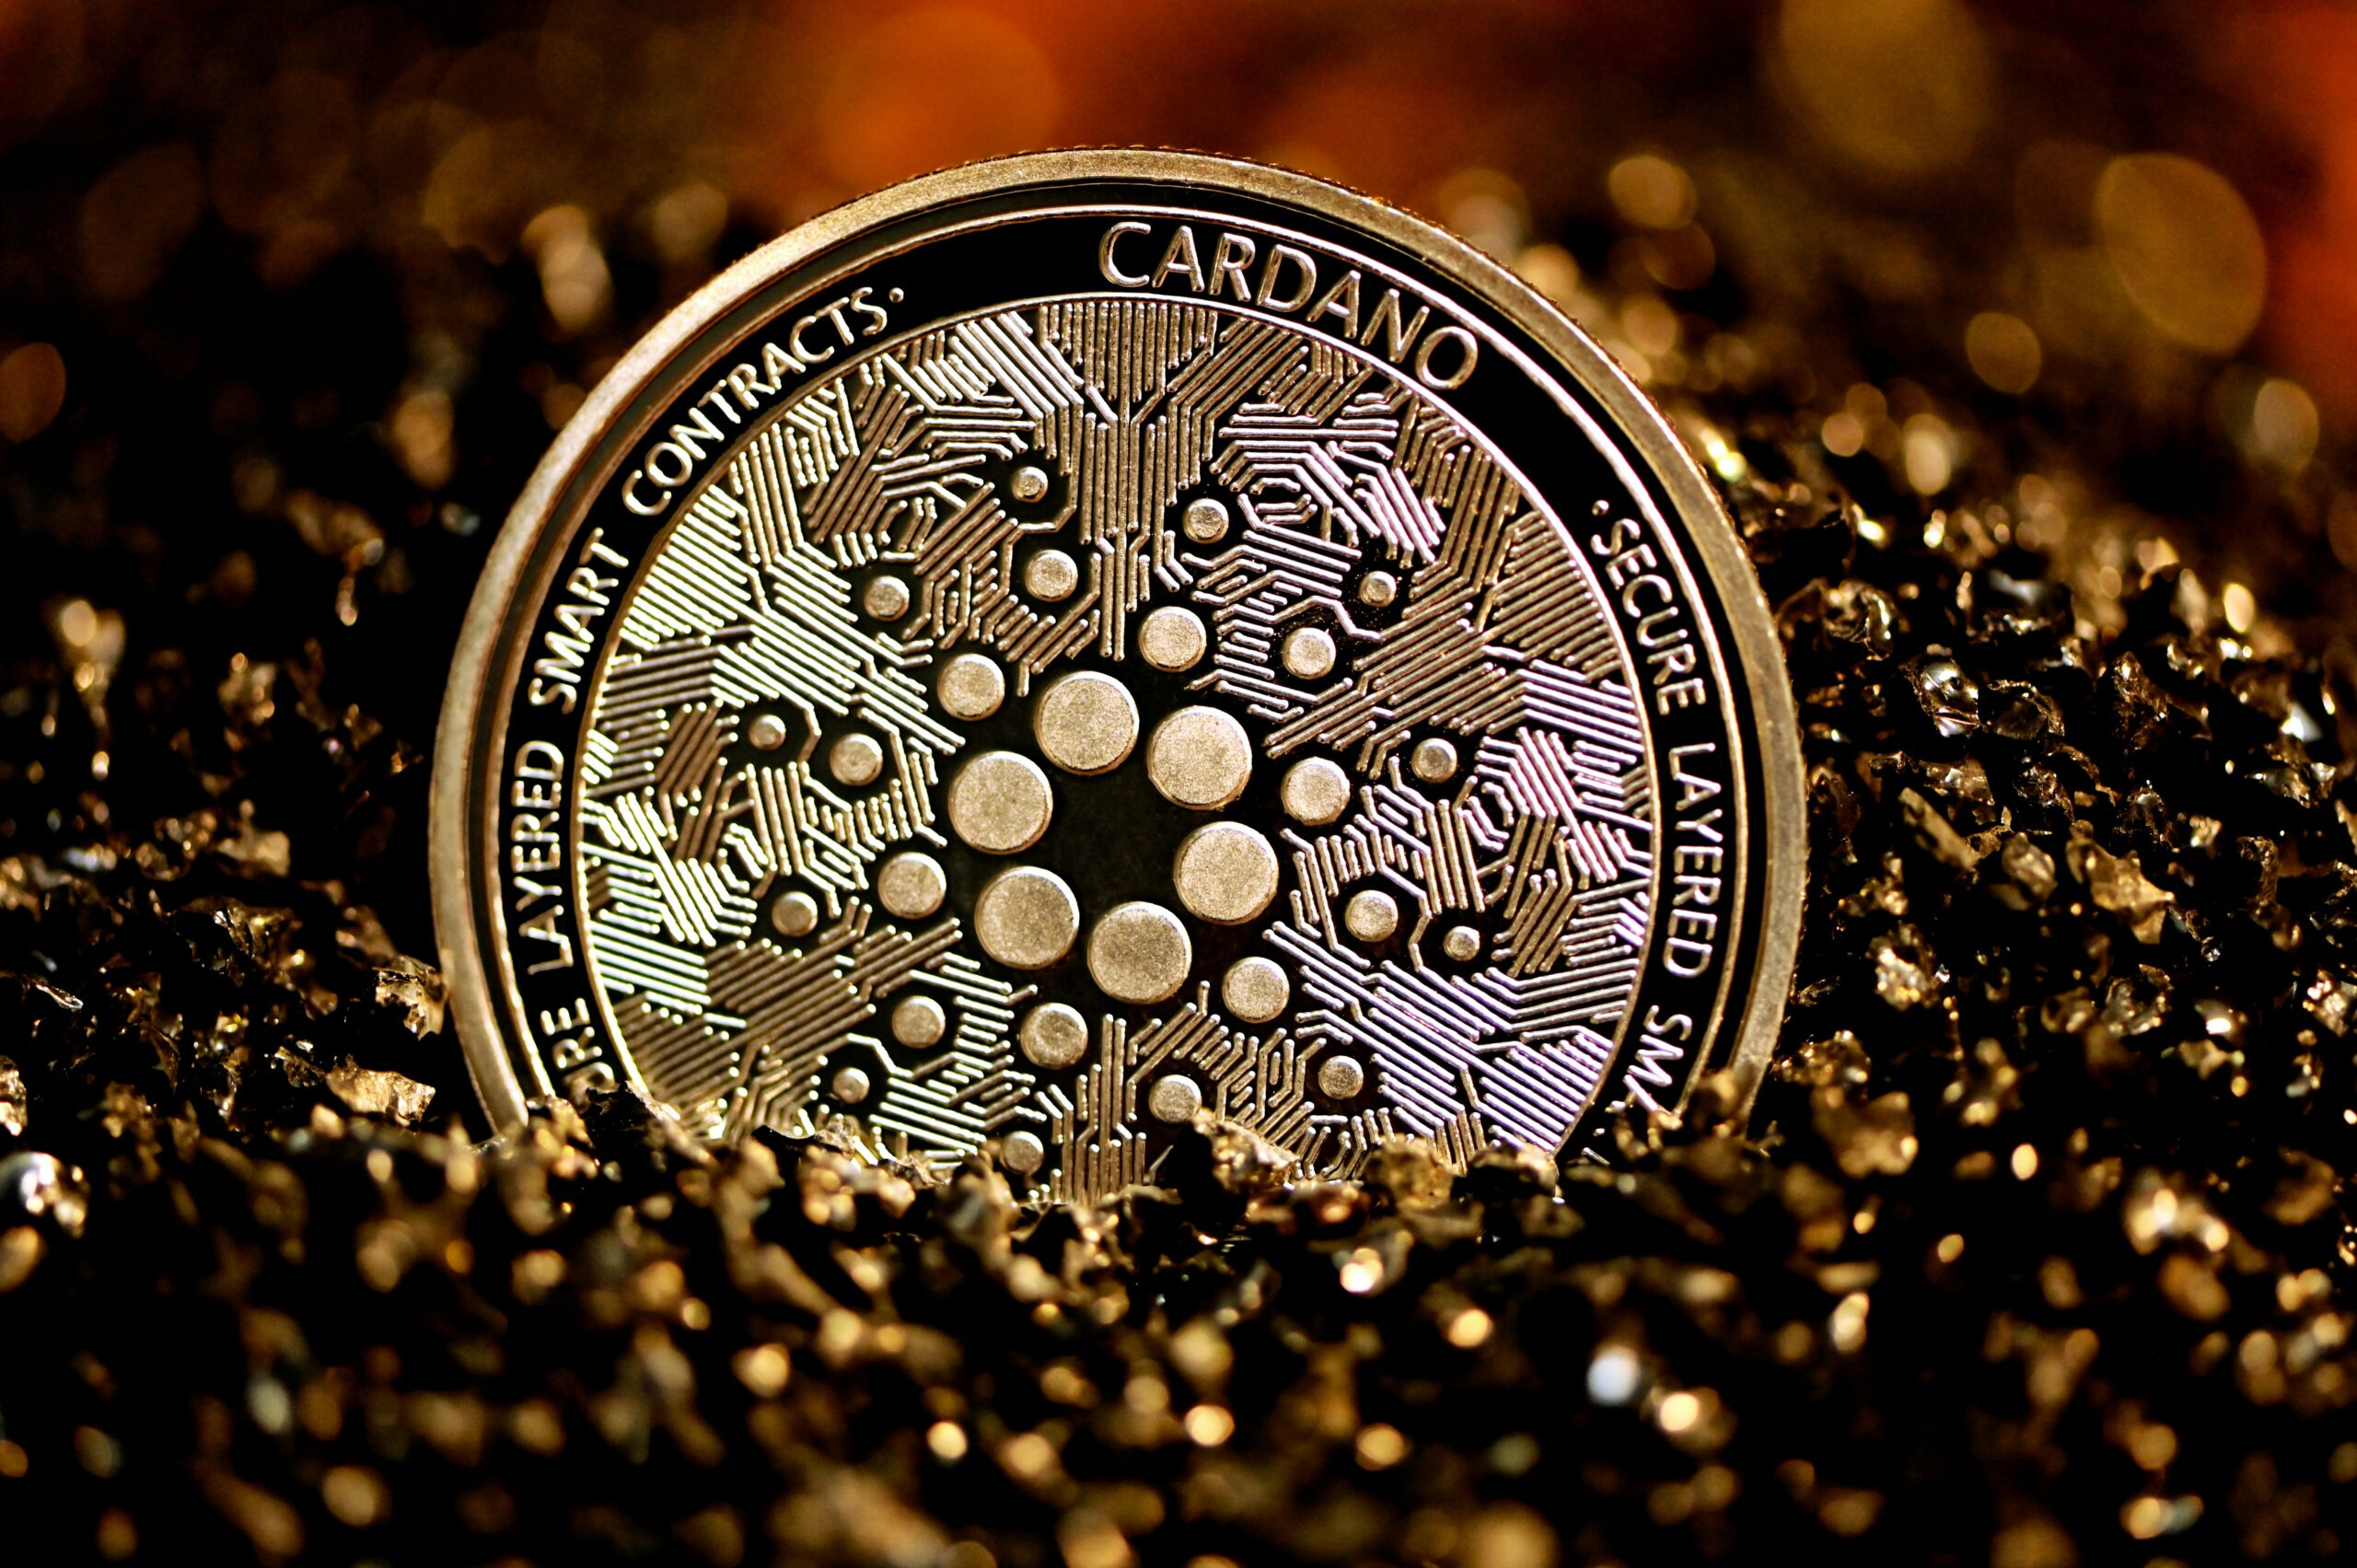 Charles Hoskinson Explains Why Tesla CEO Should Pick Cardano Instead Of Bitcoin